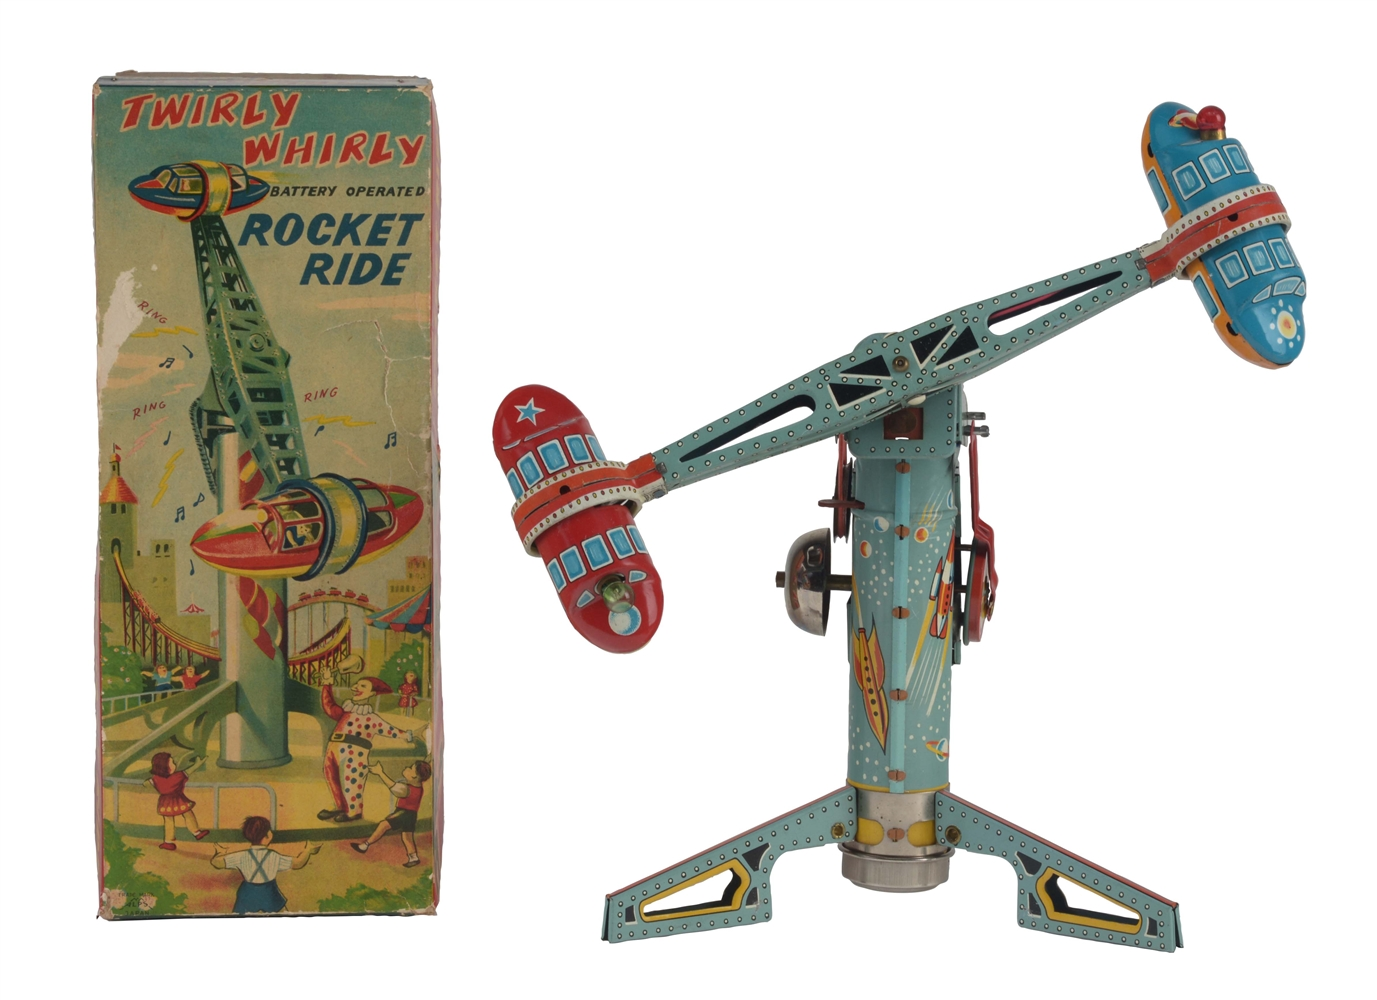 Japanese Tin Litho Battery Operated Twirly Whirly Rocket Ride With Box.